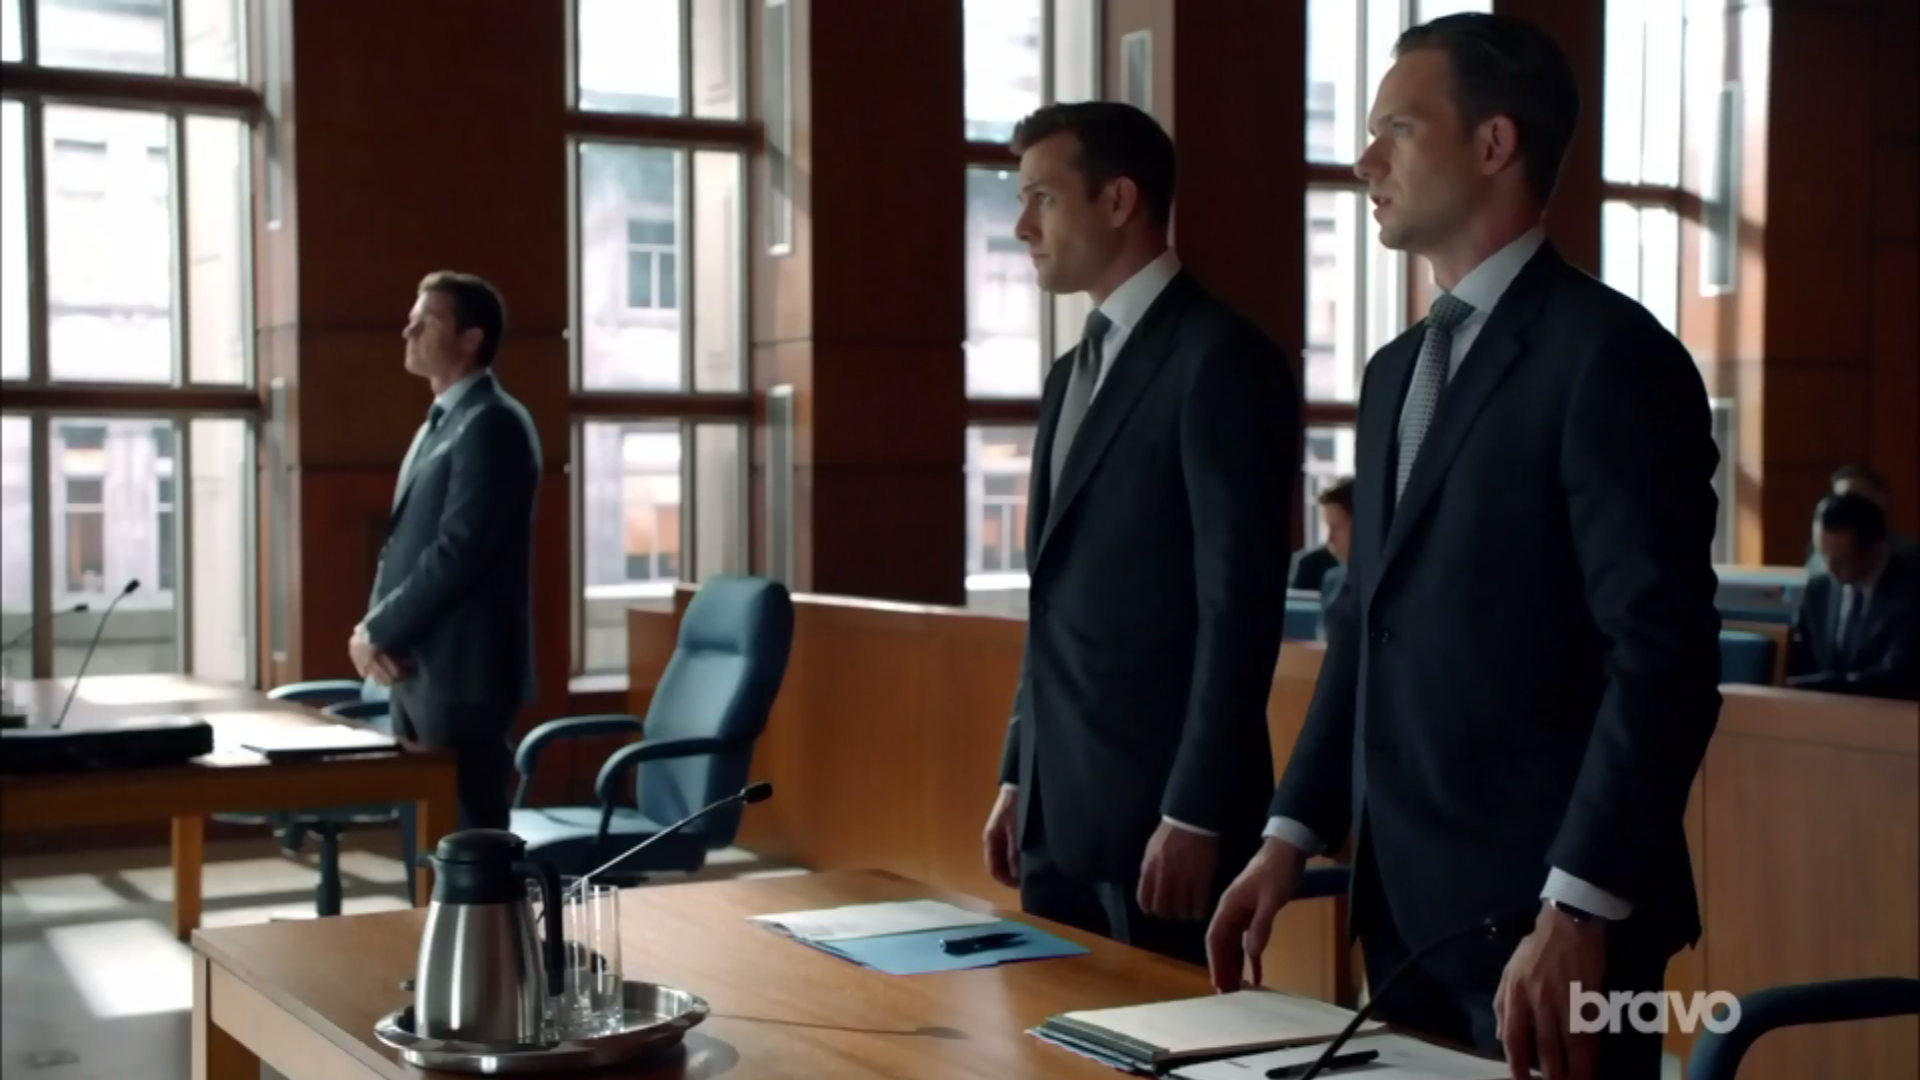 suits harvey specter office. trouble is, harvey interprets every move tanner makes as underhanded and out to get him. he counters with dirty tricks of his own \u201cbury\u201d alyssa, suits specter office